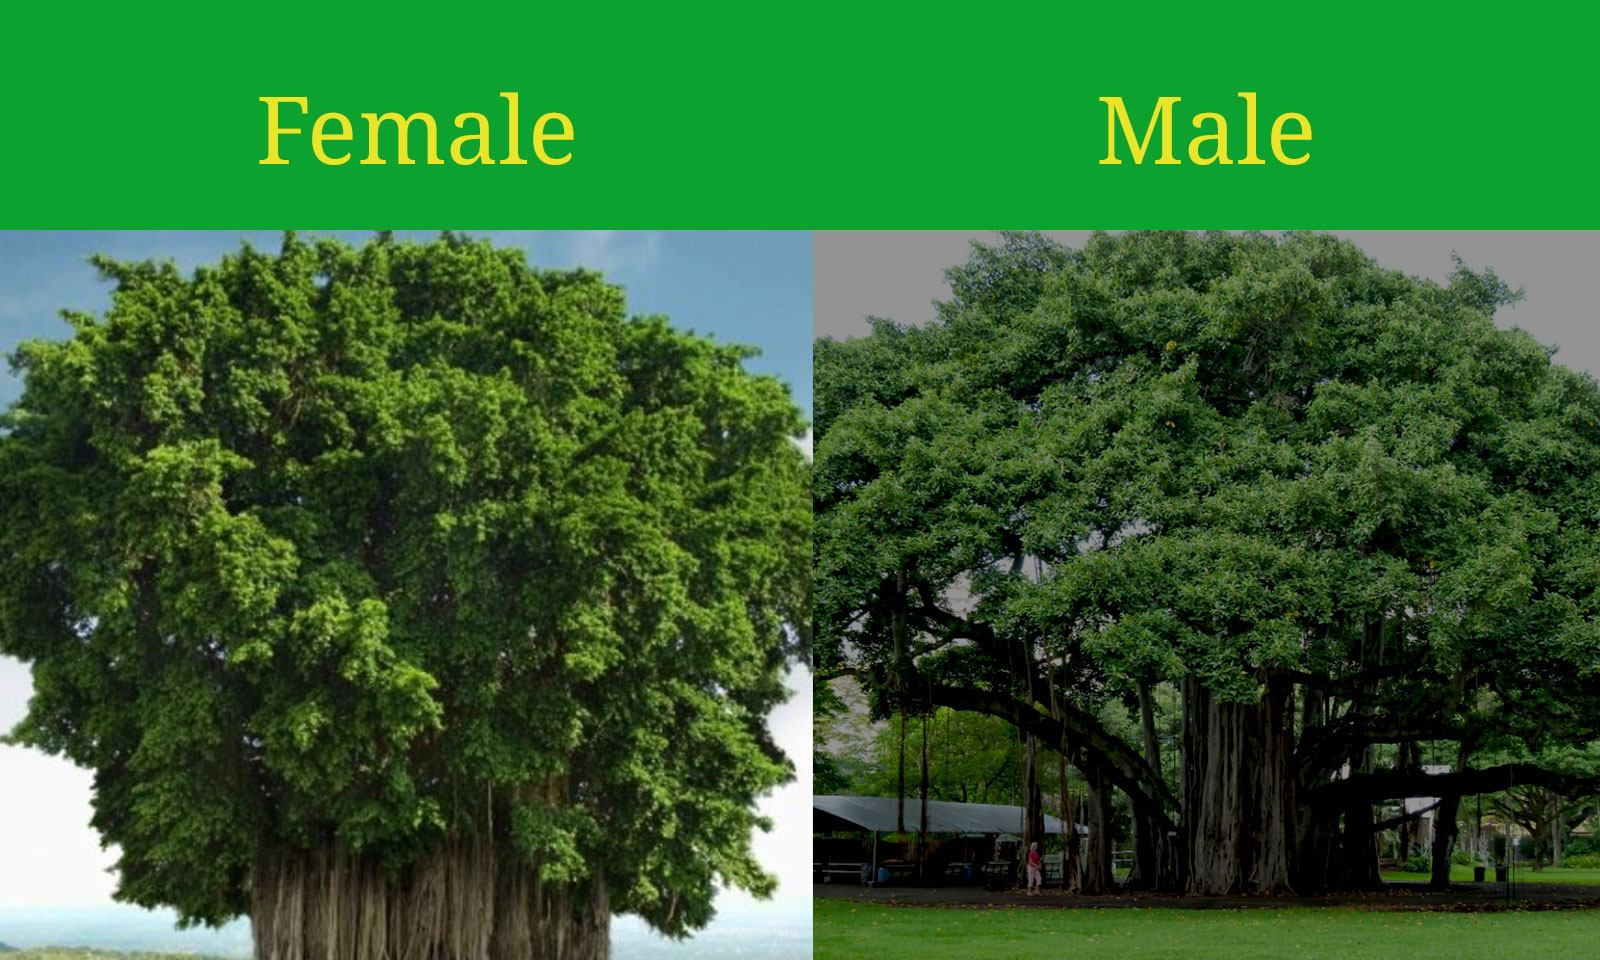 Female Banyan Tree vs Male Banyan Tree.